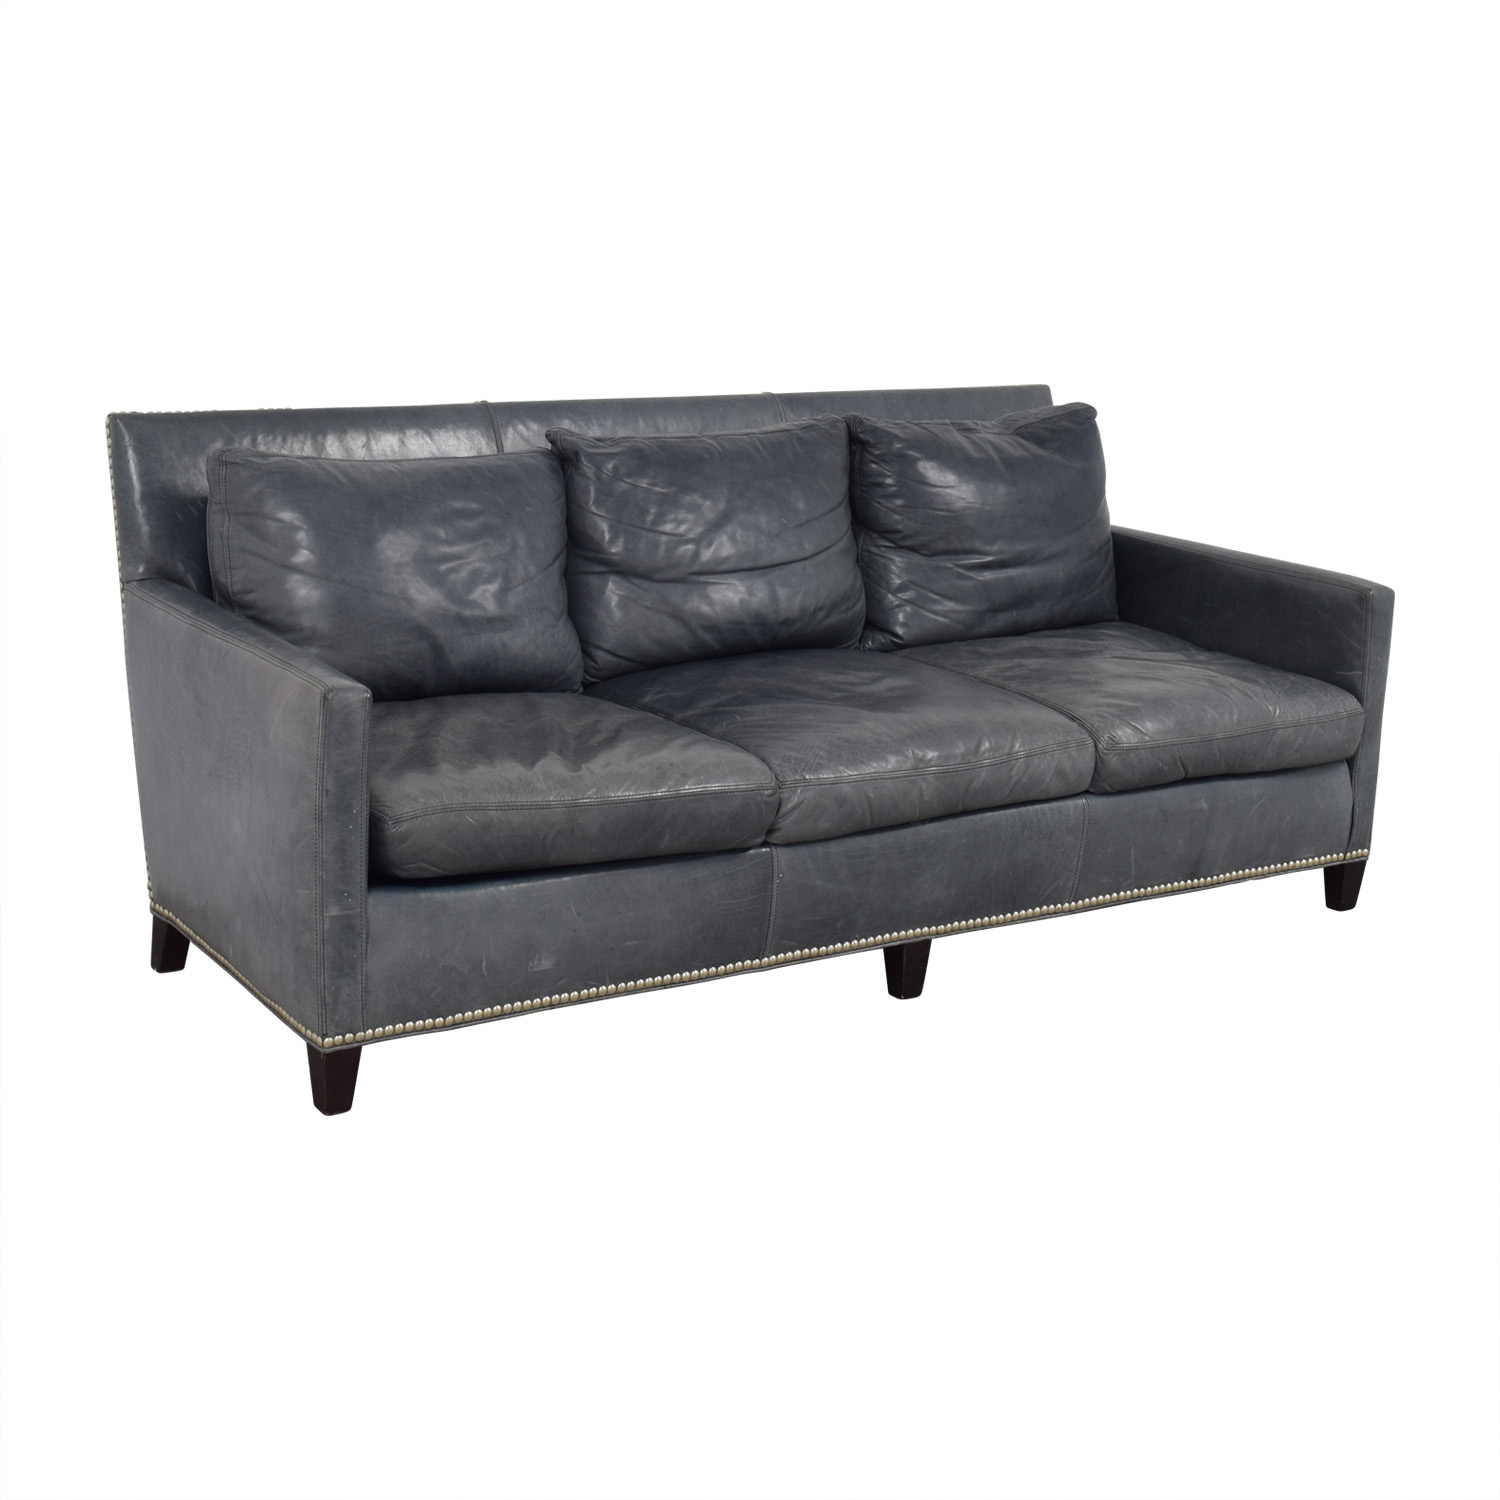 90 off lillian august lillian august maxwell teal for Teal leather sofa